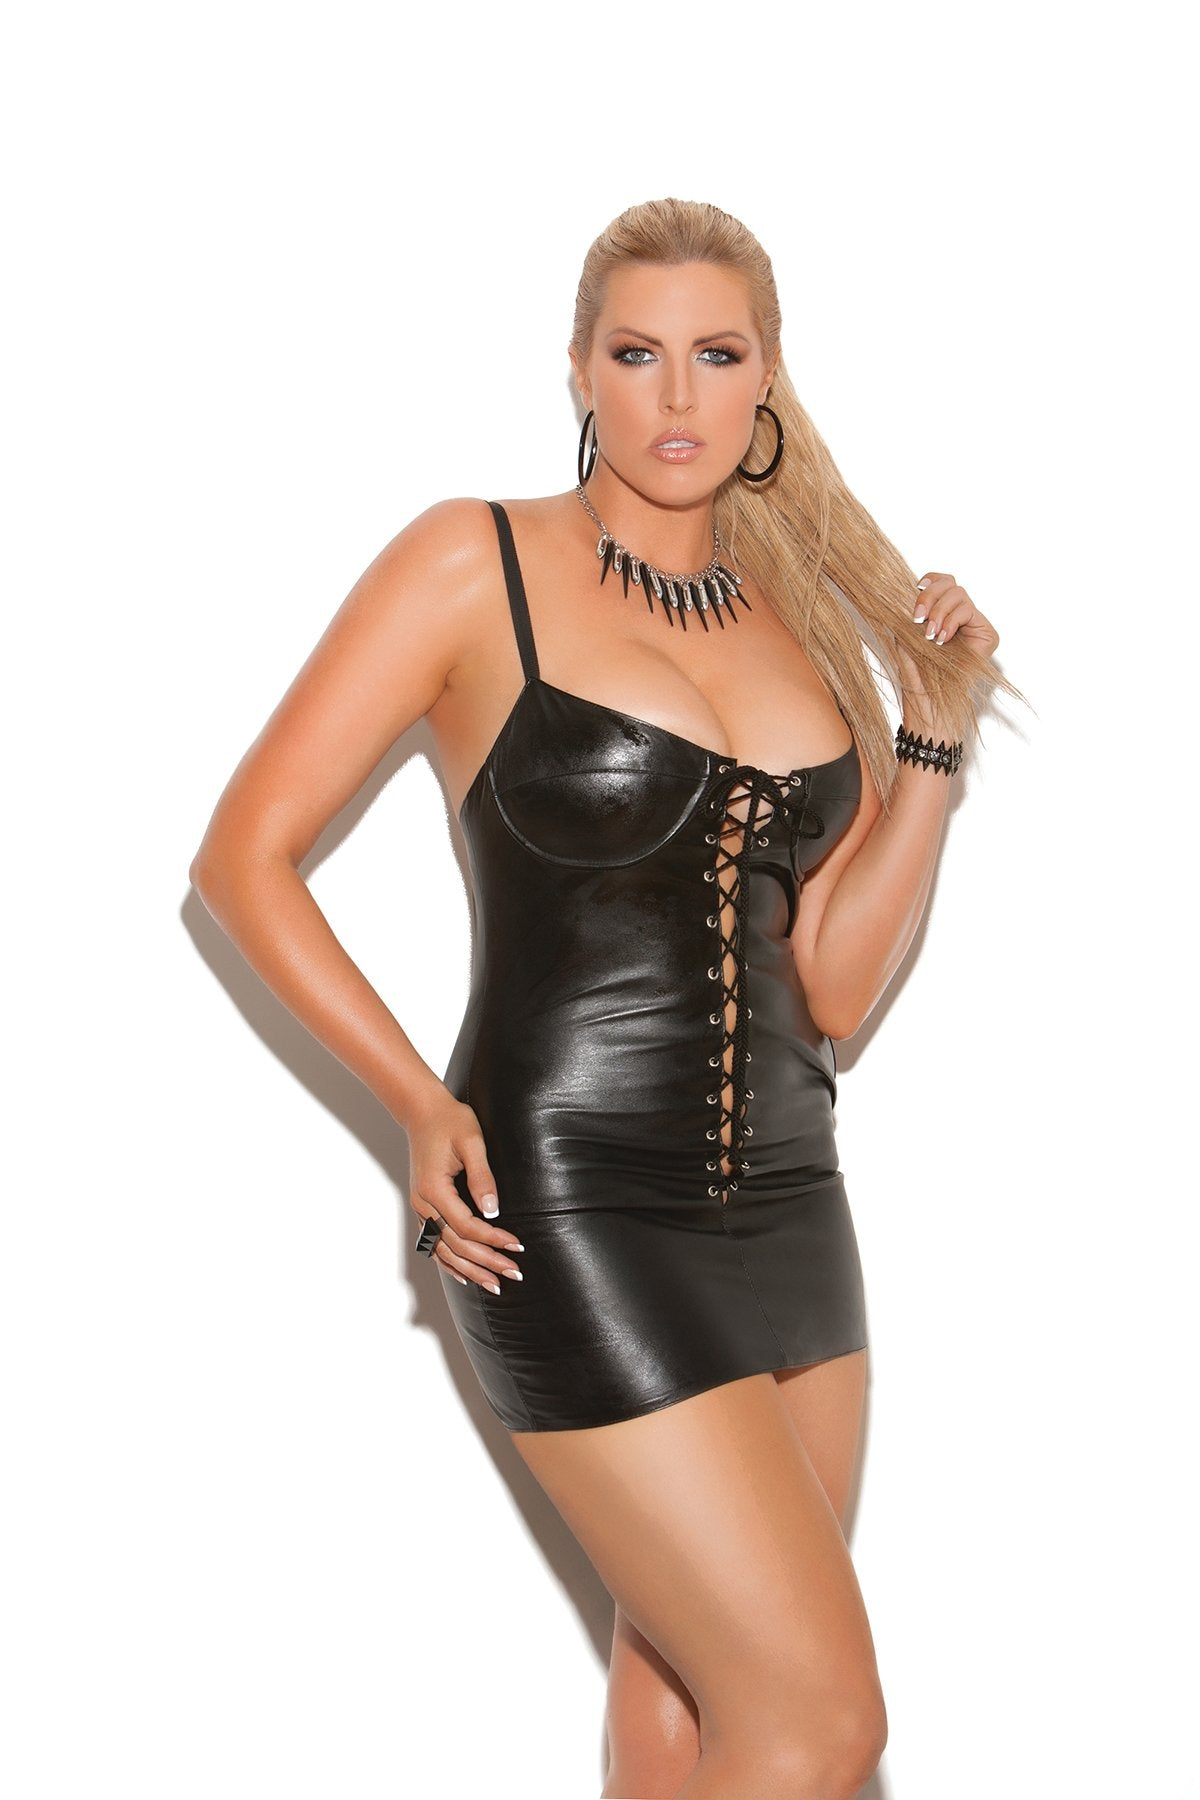 Lace Up Leather Mini Dress club wear size 1x color black Nakees